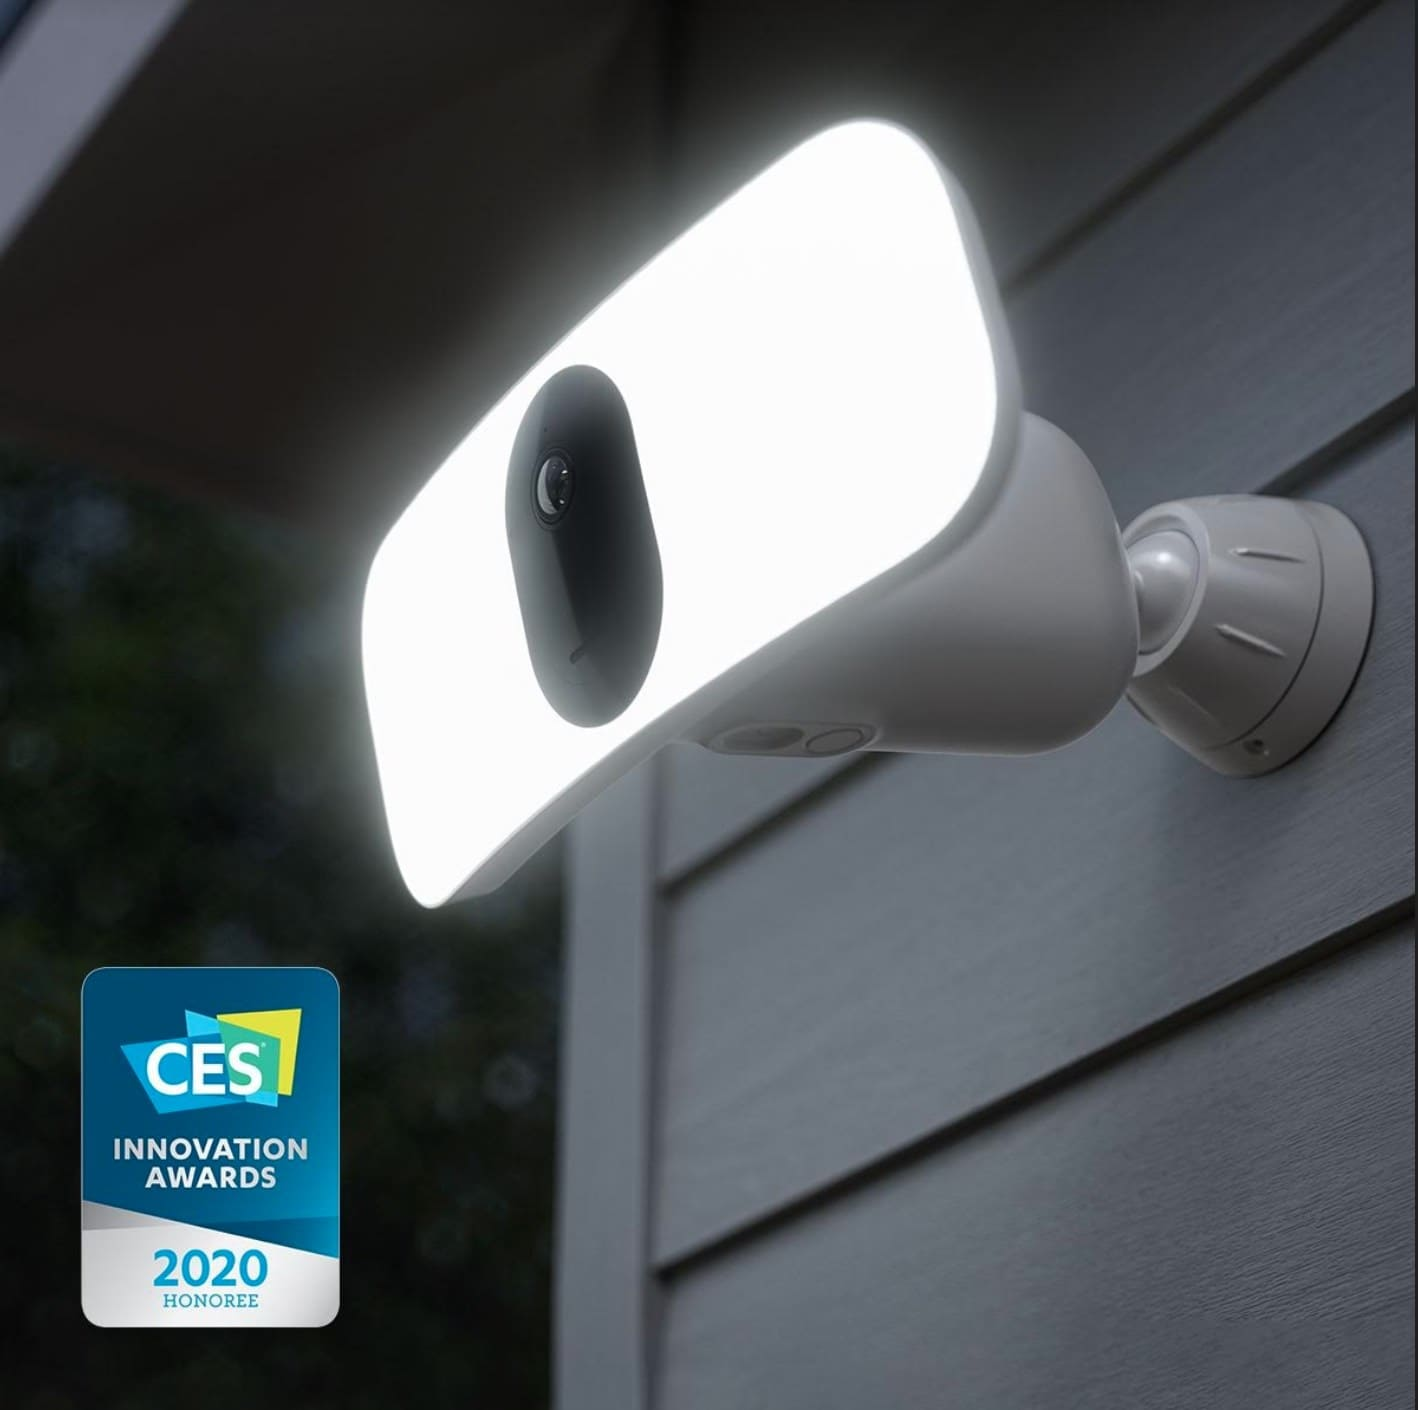 Arlo Pro 3 Floodlight now supports Apple HomeKit